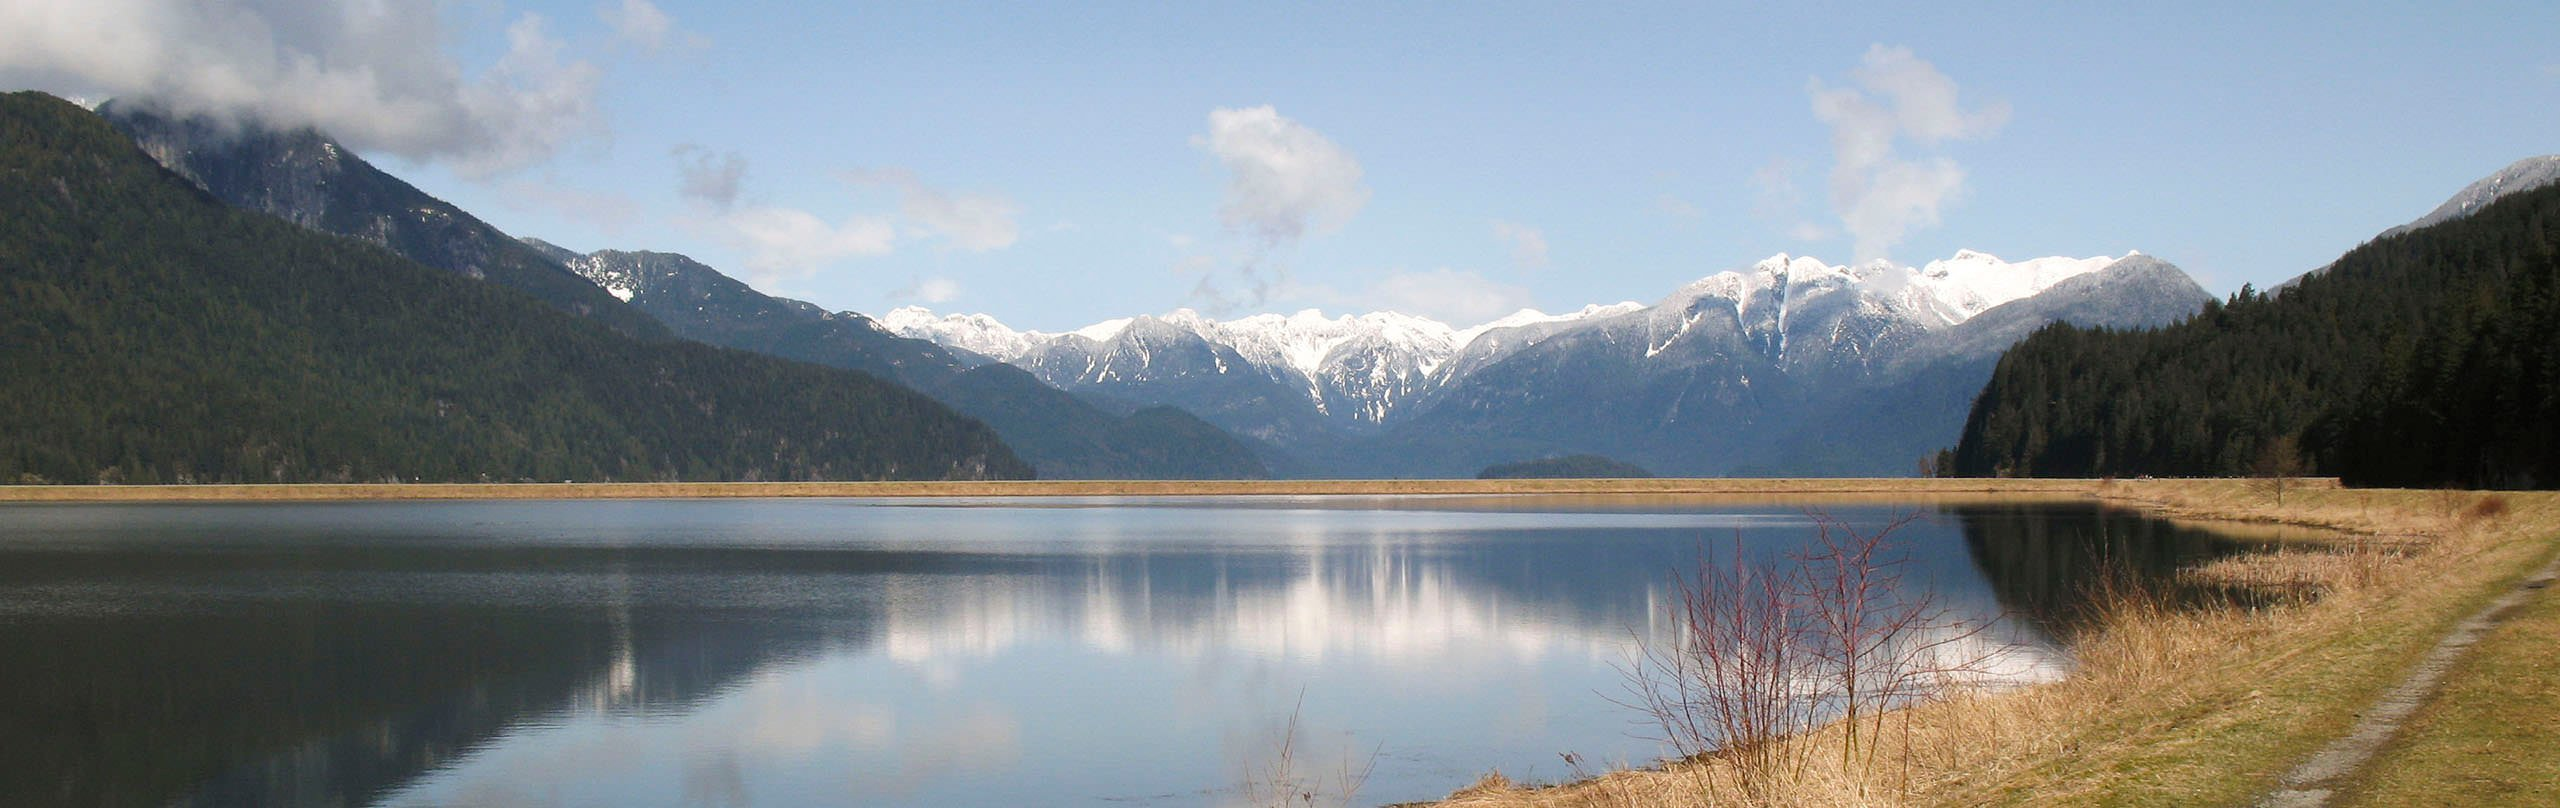 A view of the Pitt Lake area with the snow-capped mountains